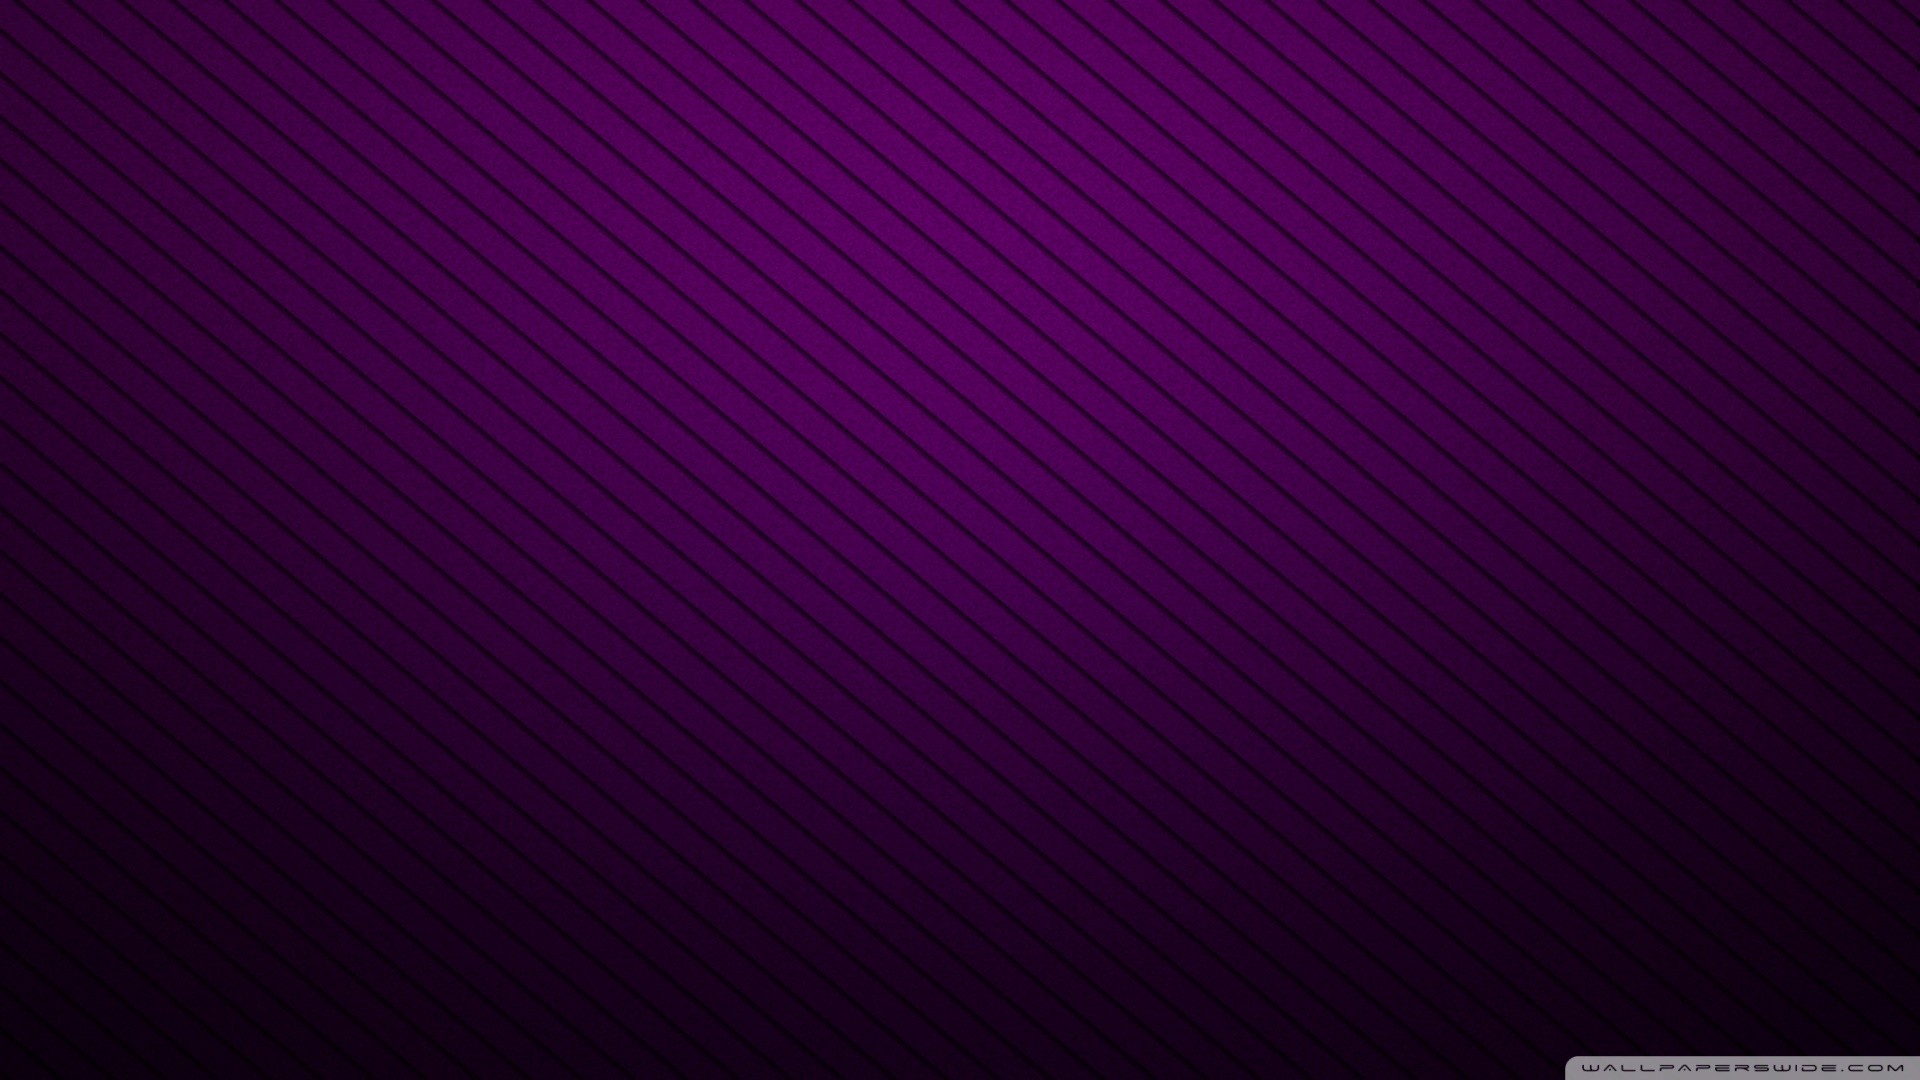 Purple Hd Wallpaper 76 Pictures